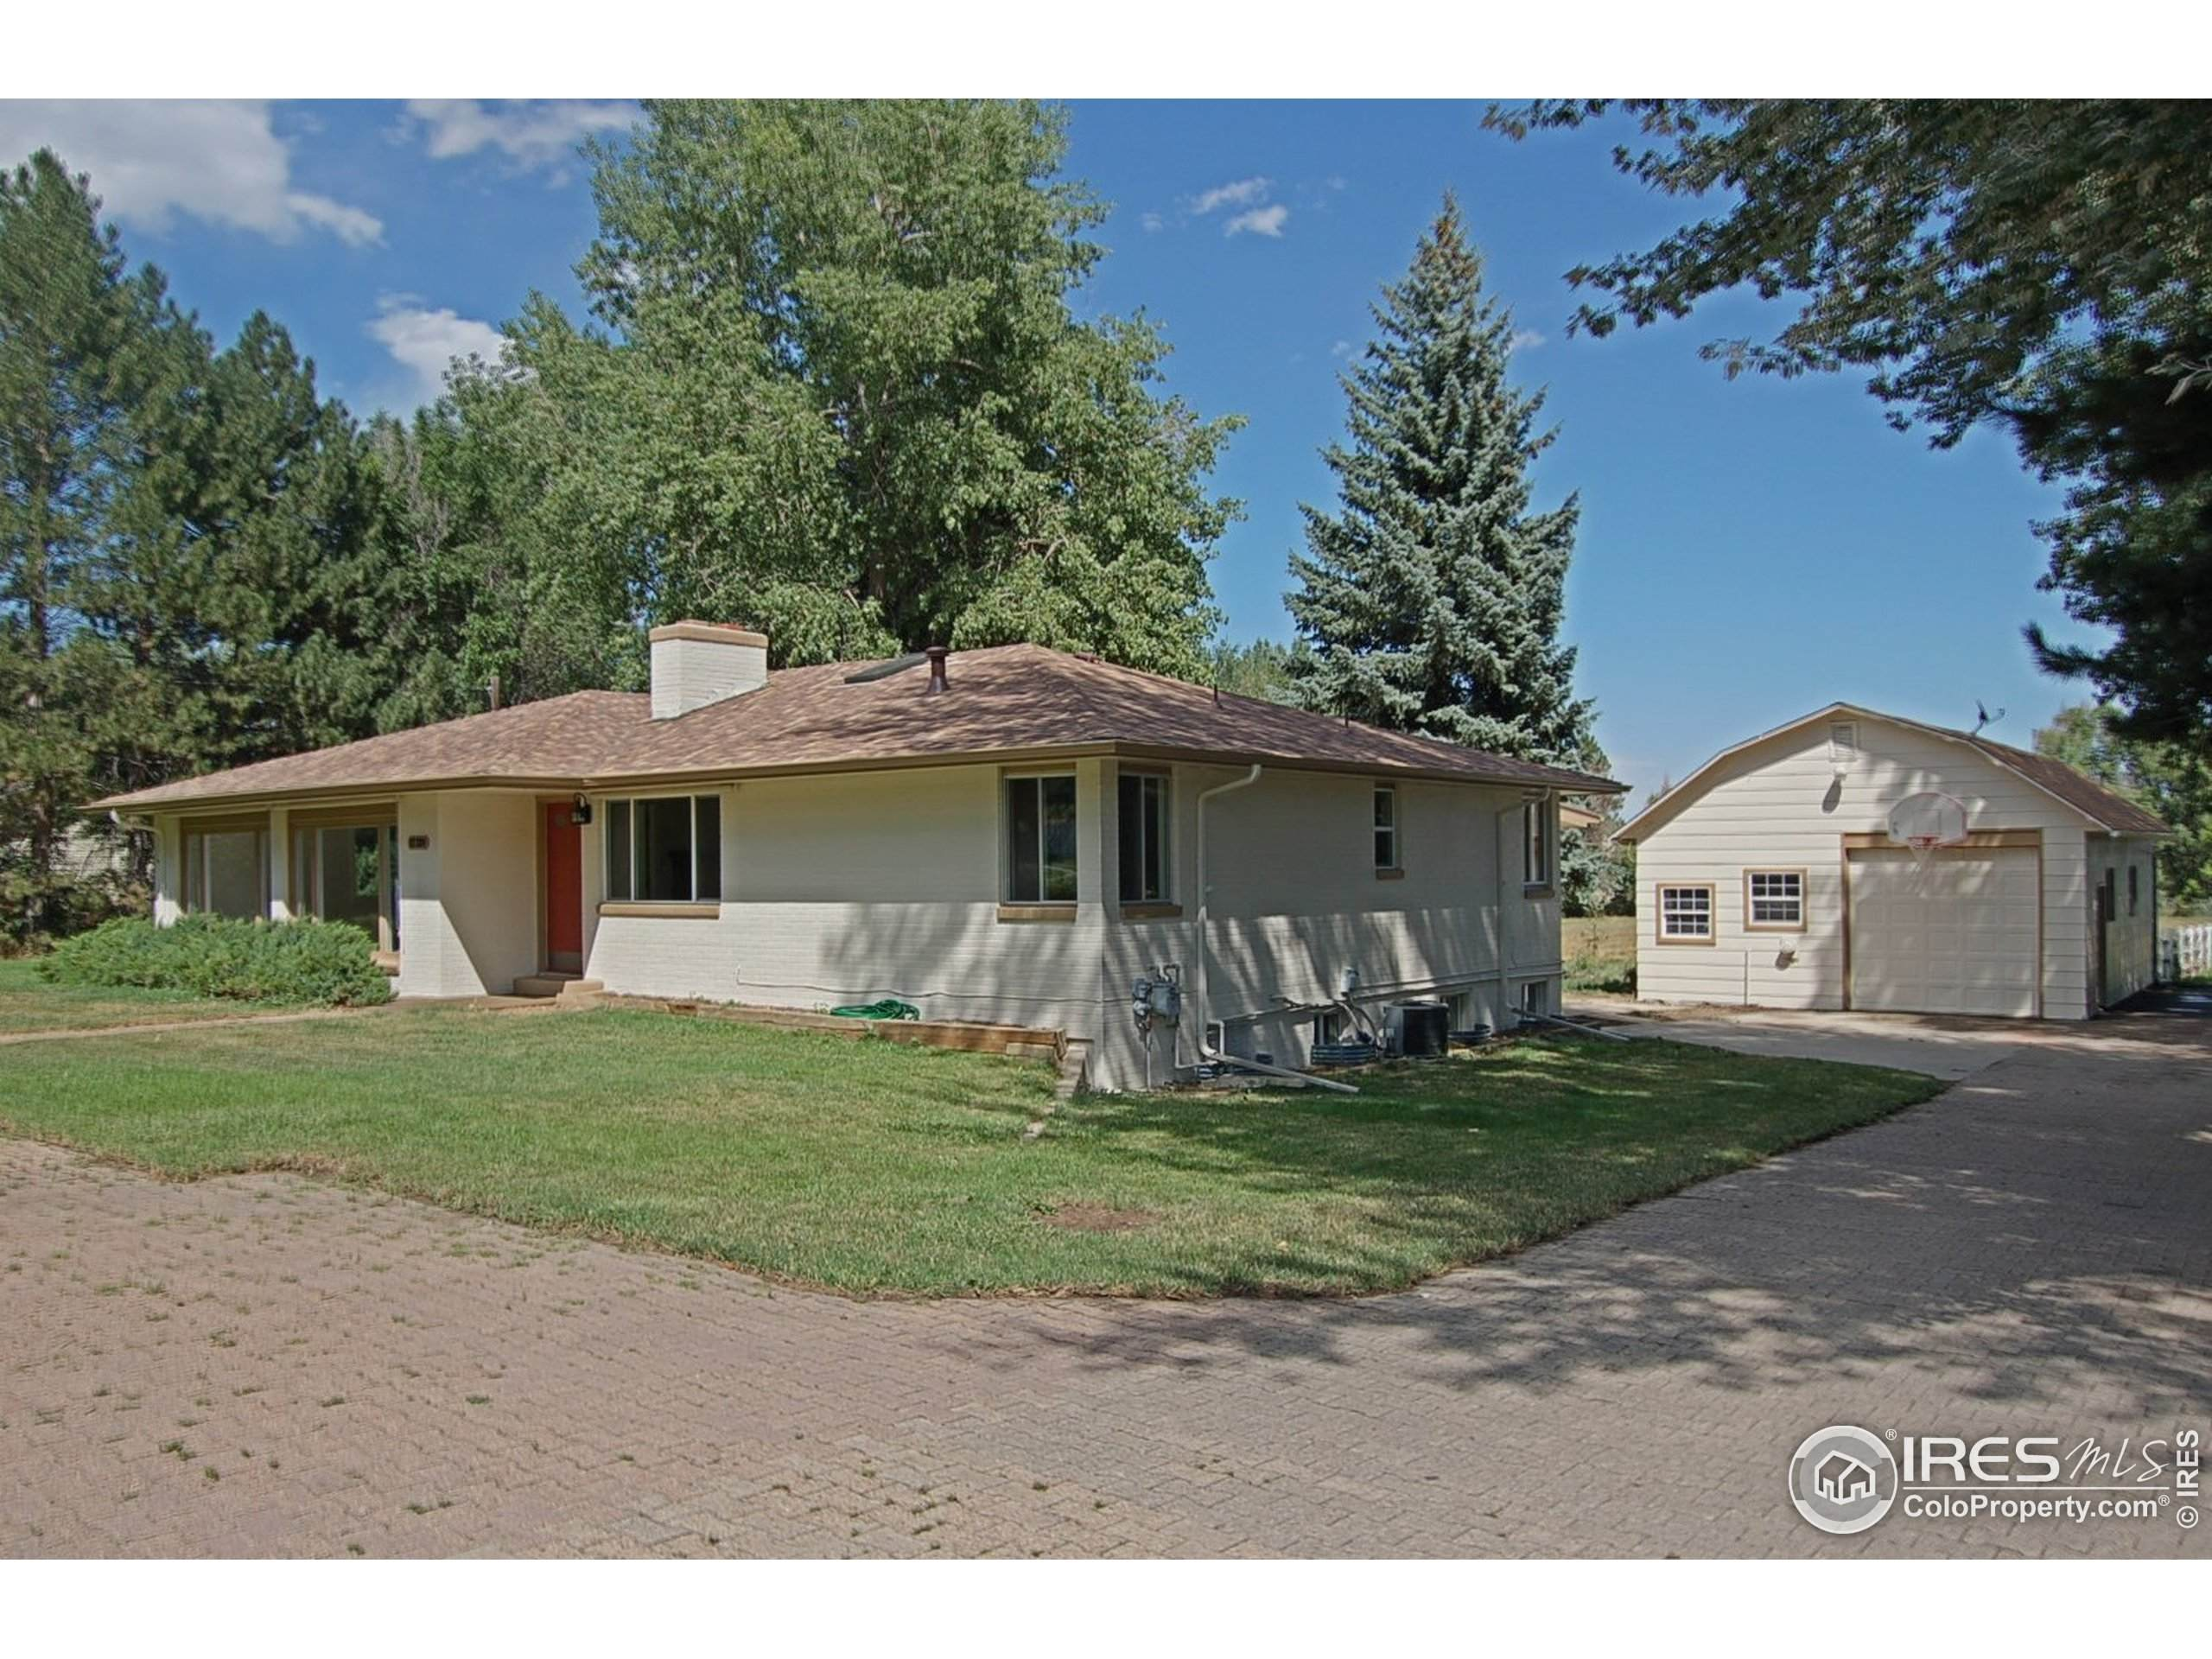 1939 Tidewater Dr, Windsor, CO 80550 (MLS #937743) :: RE/MAX Alliance